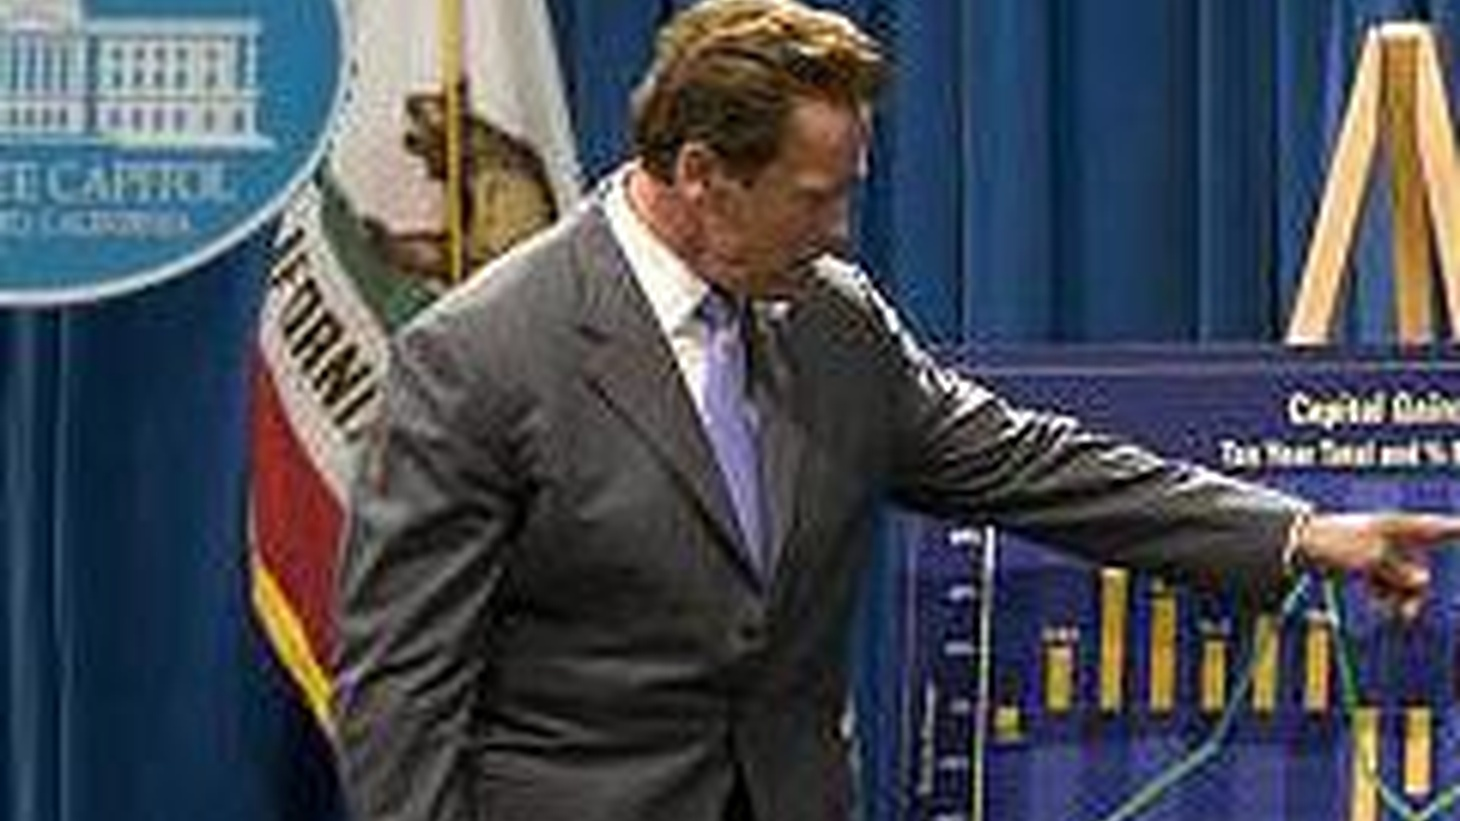 Two days after California voters passed Proposition 8 to prohibit same-sex marriage, three appeals to the state supreme court have been filed, pitting the rights of gays and lesbians against the will of the voters. Also, increased taxes and spending cuts on the California horizon, and Proposition 11 may survive with a razor-thin margin.